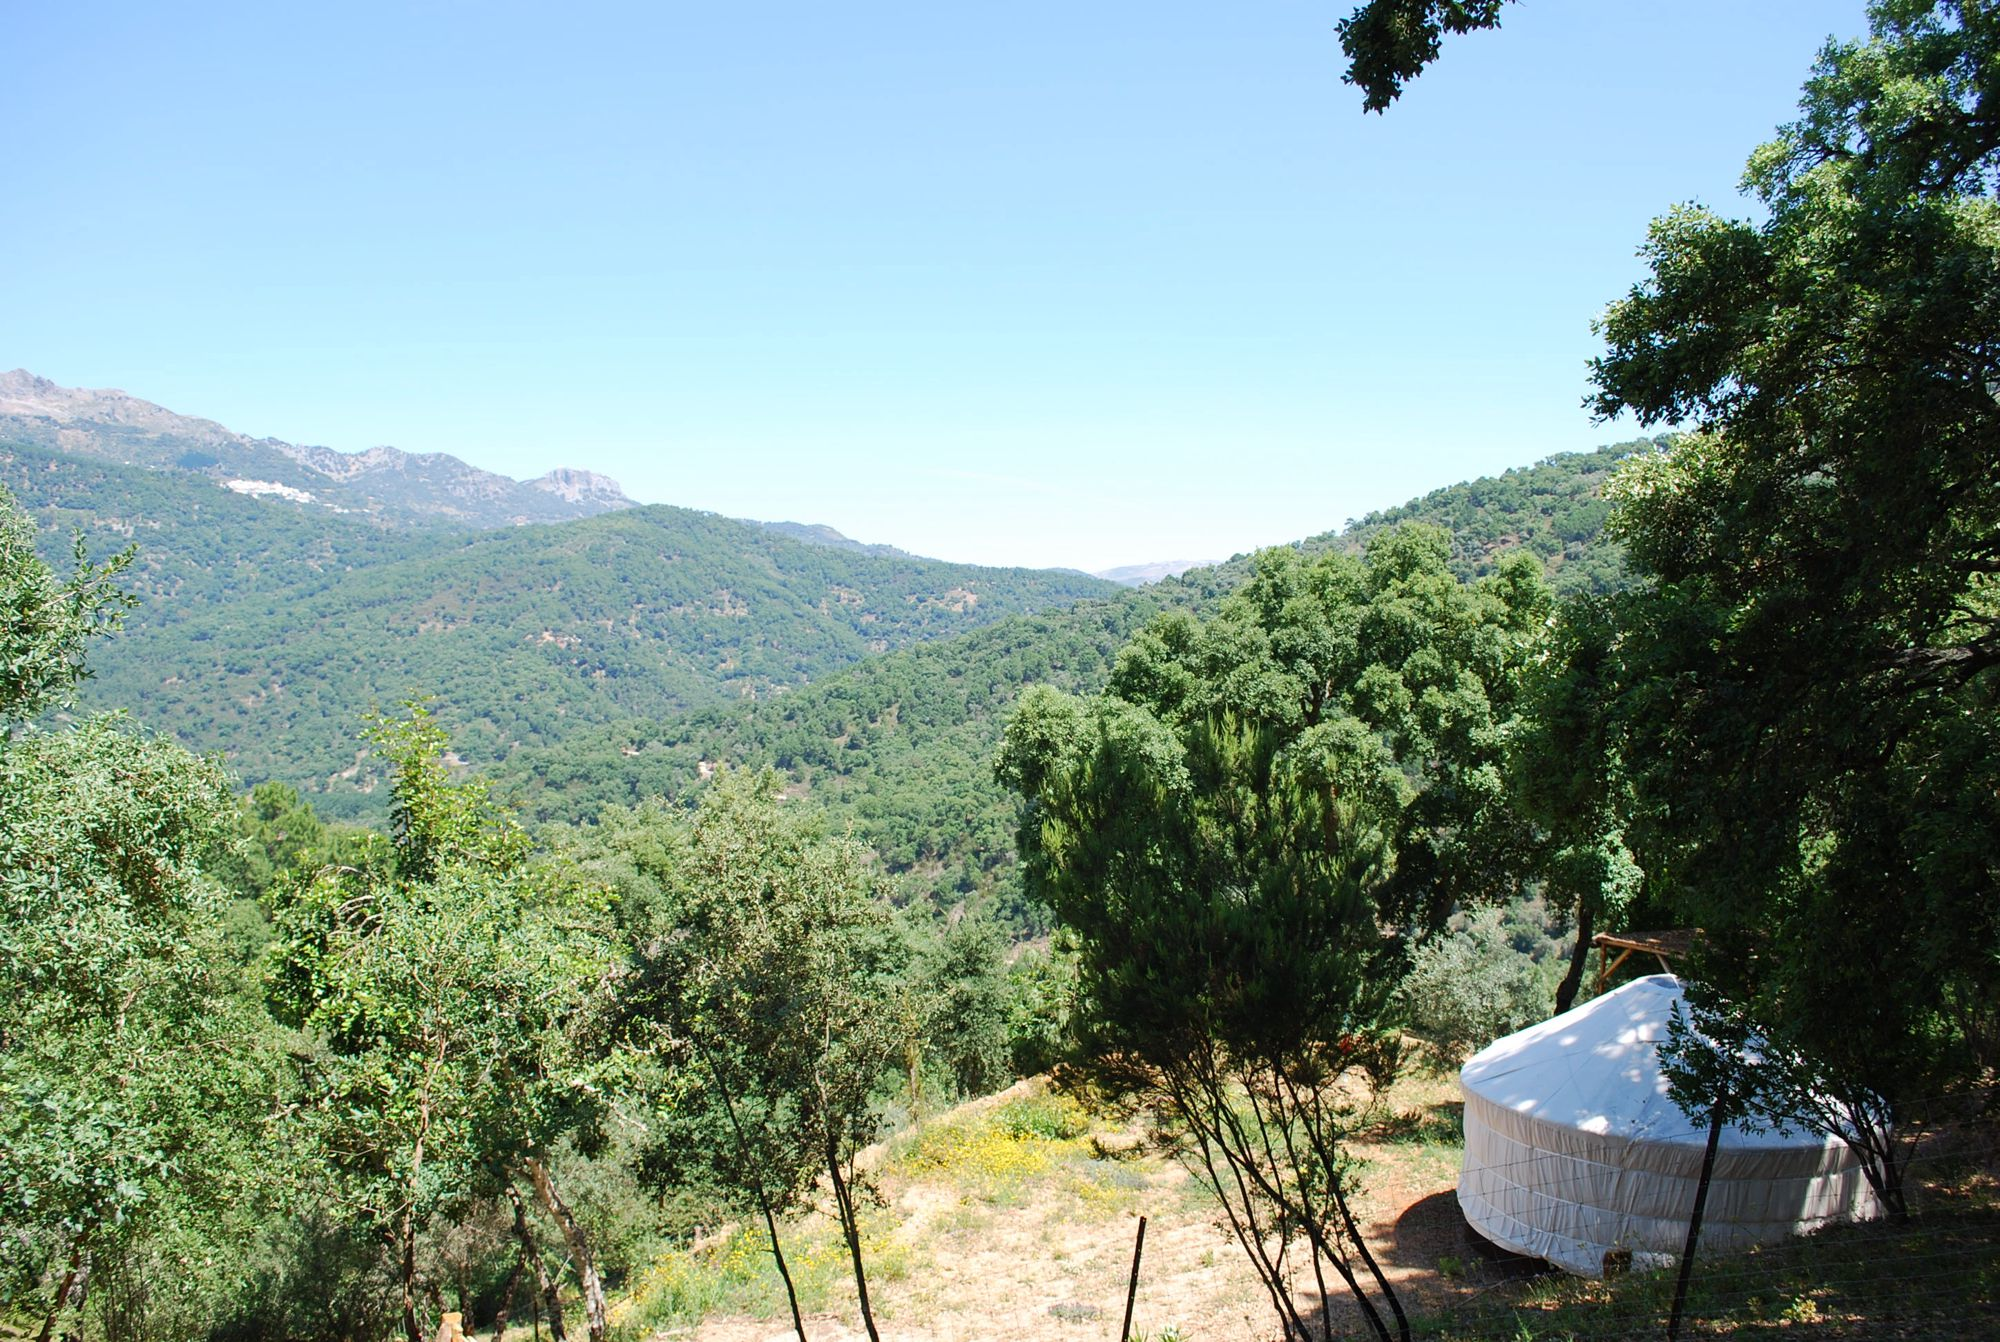 Glamping in South Spain holidays at Cool Camping